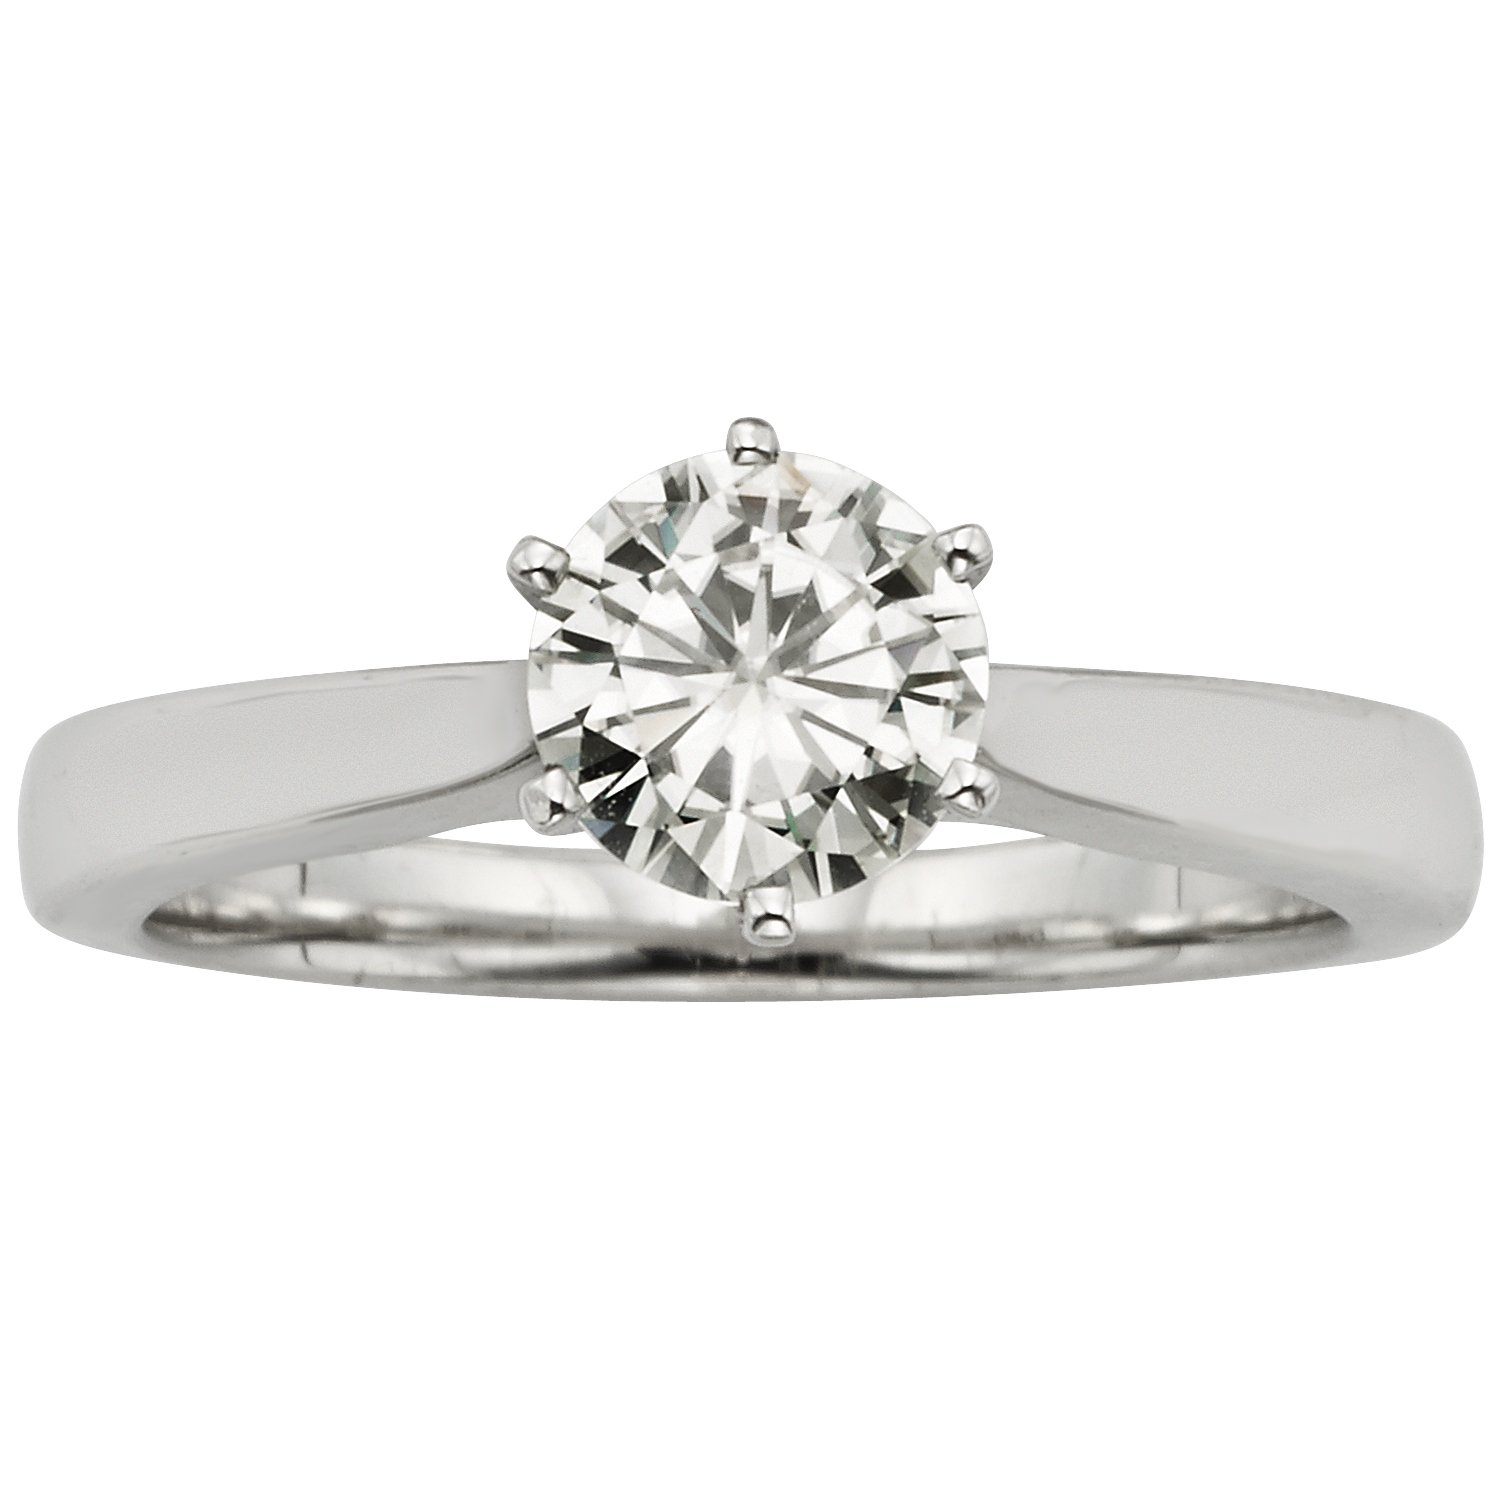 Forever Classic Round 6.5mm Moissanite Engagement Ring-size 7, 1.00ct DEW By Charles & Colvard